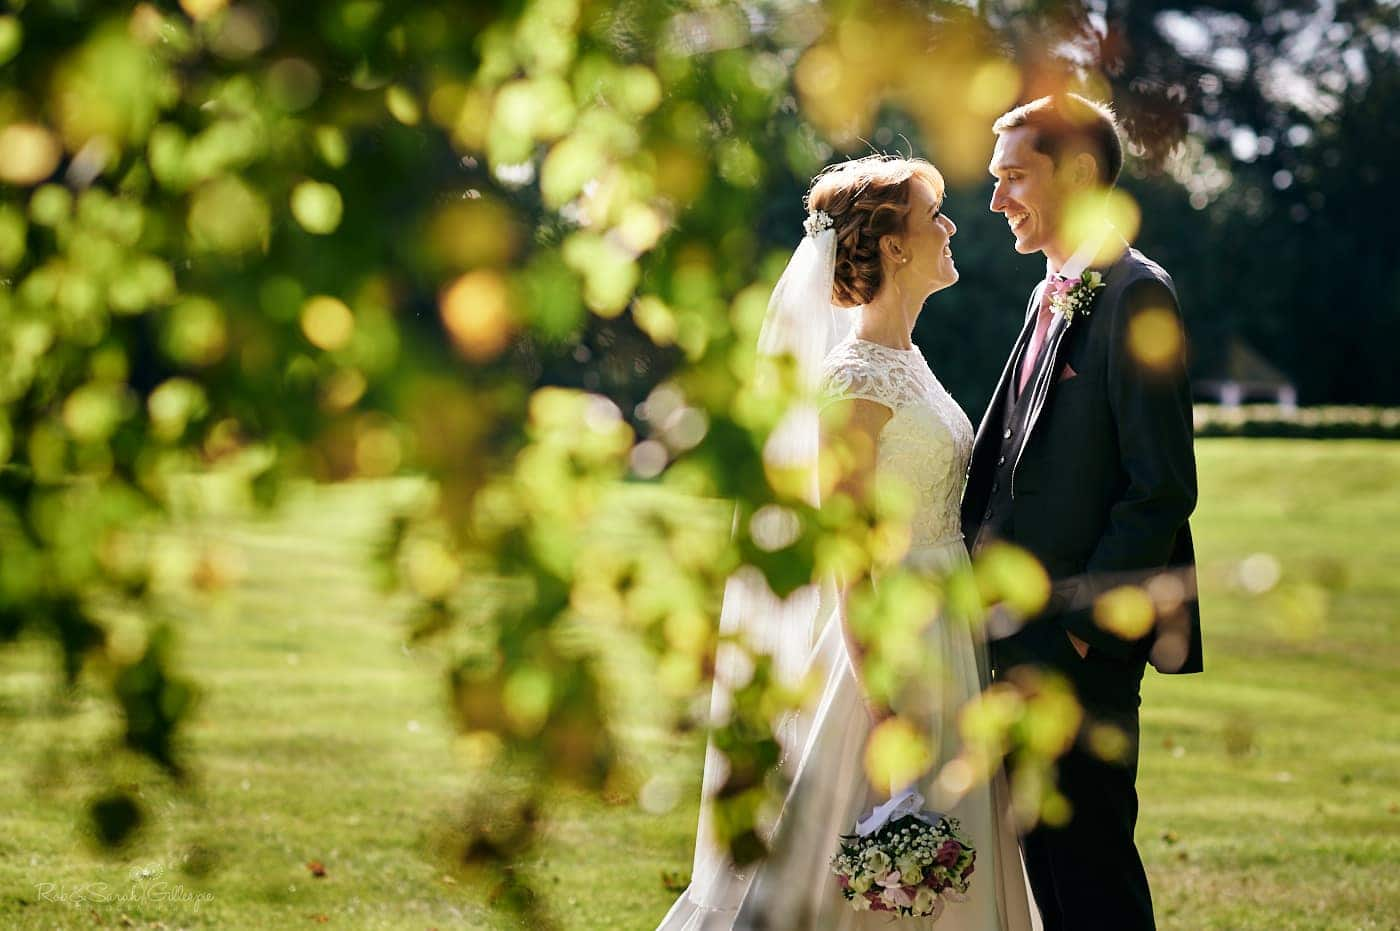 Bride and groom relaxing together in gardens